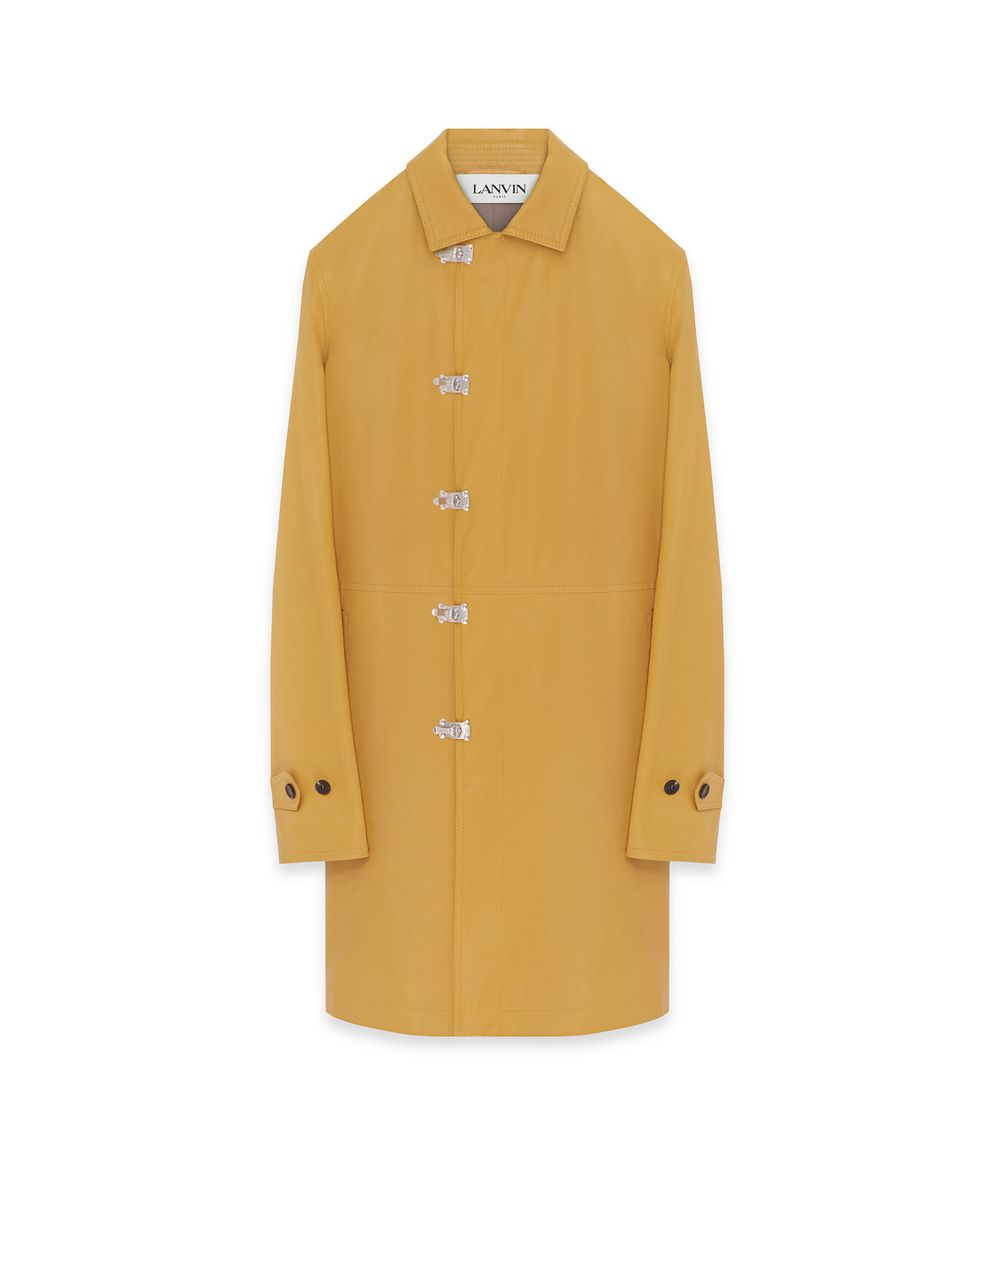 MANTEAU MACKINTOSH EN CUIR - Lanvin